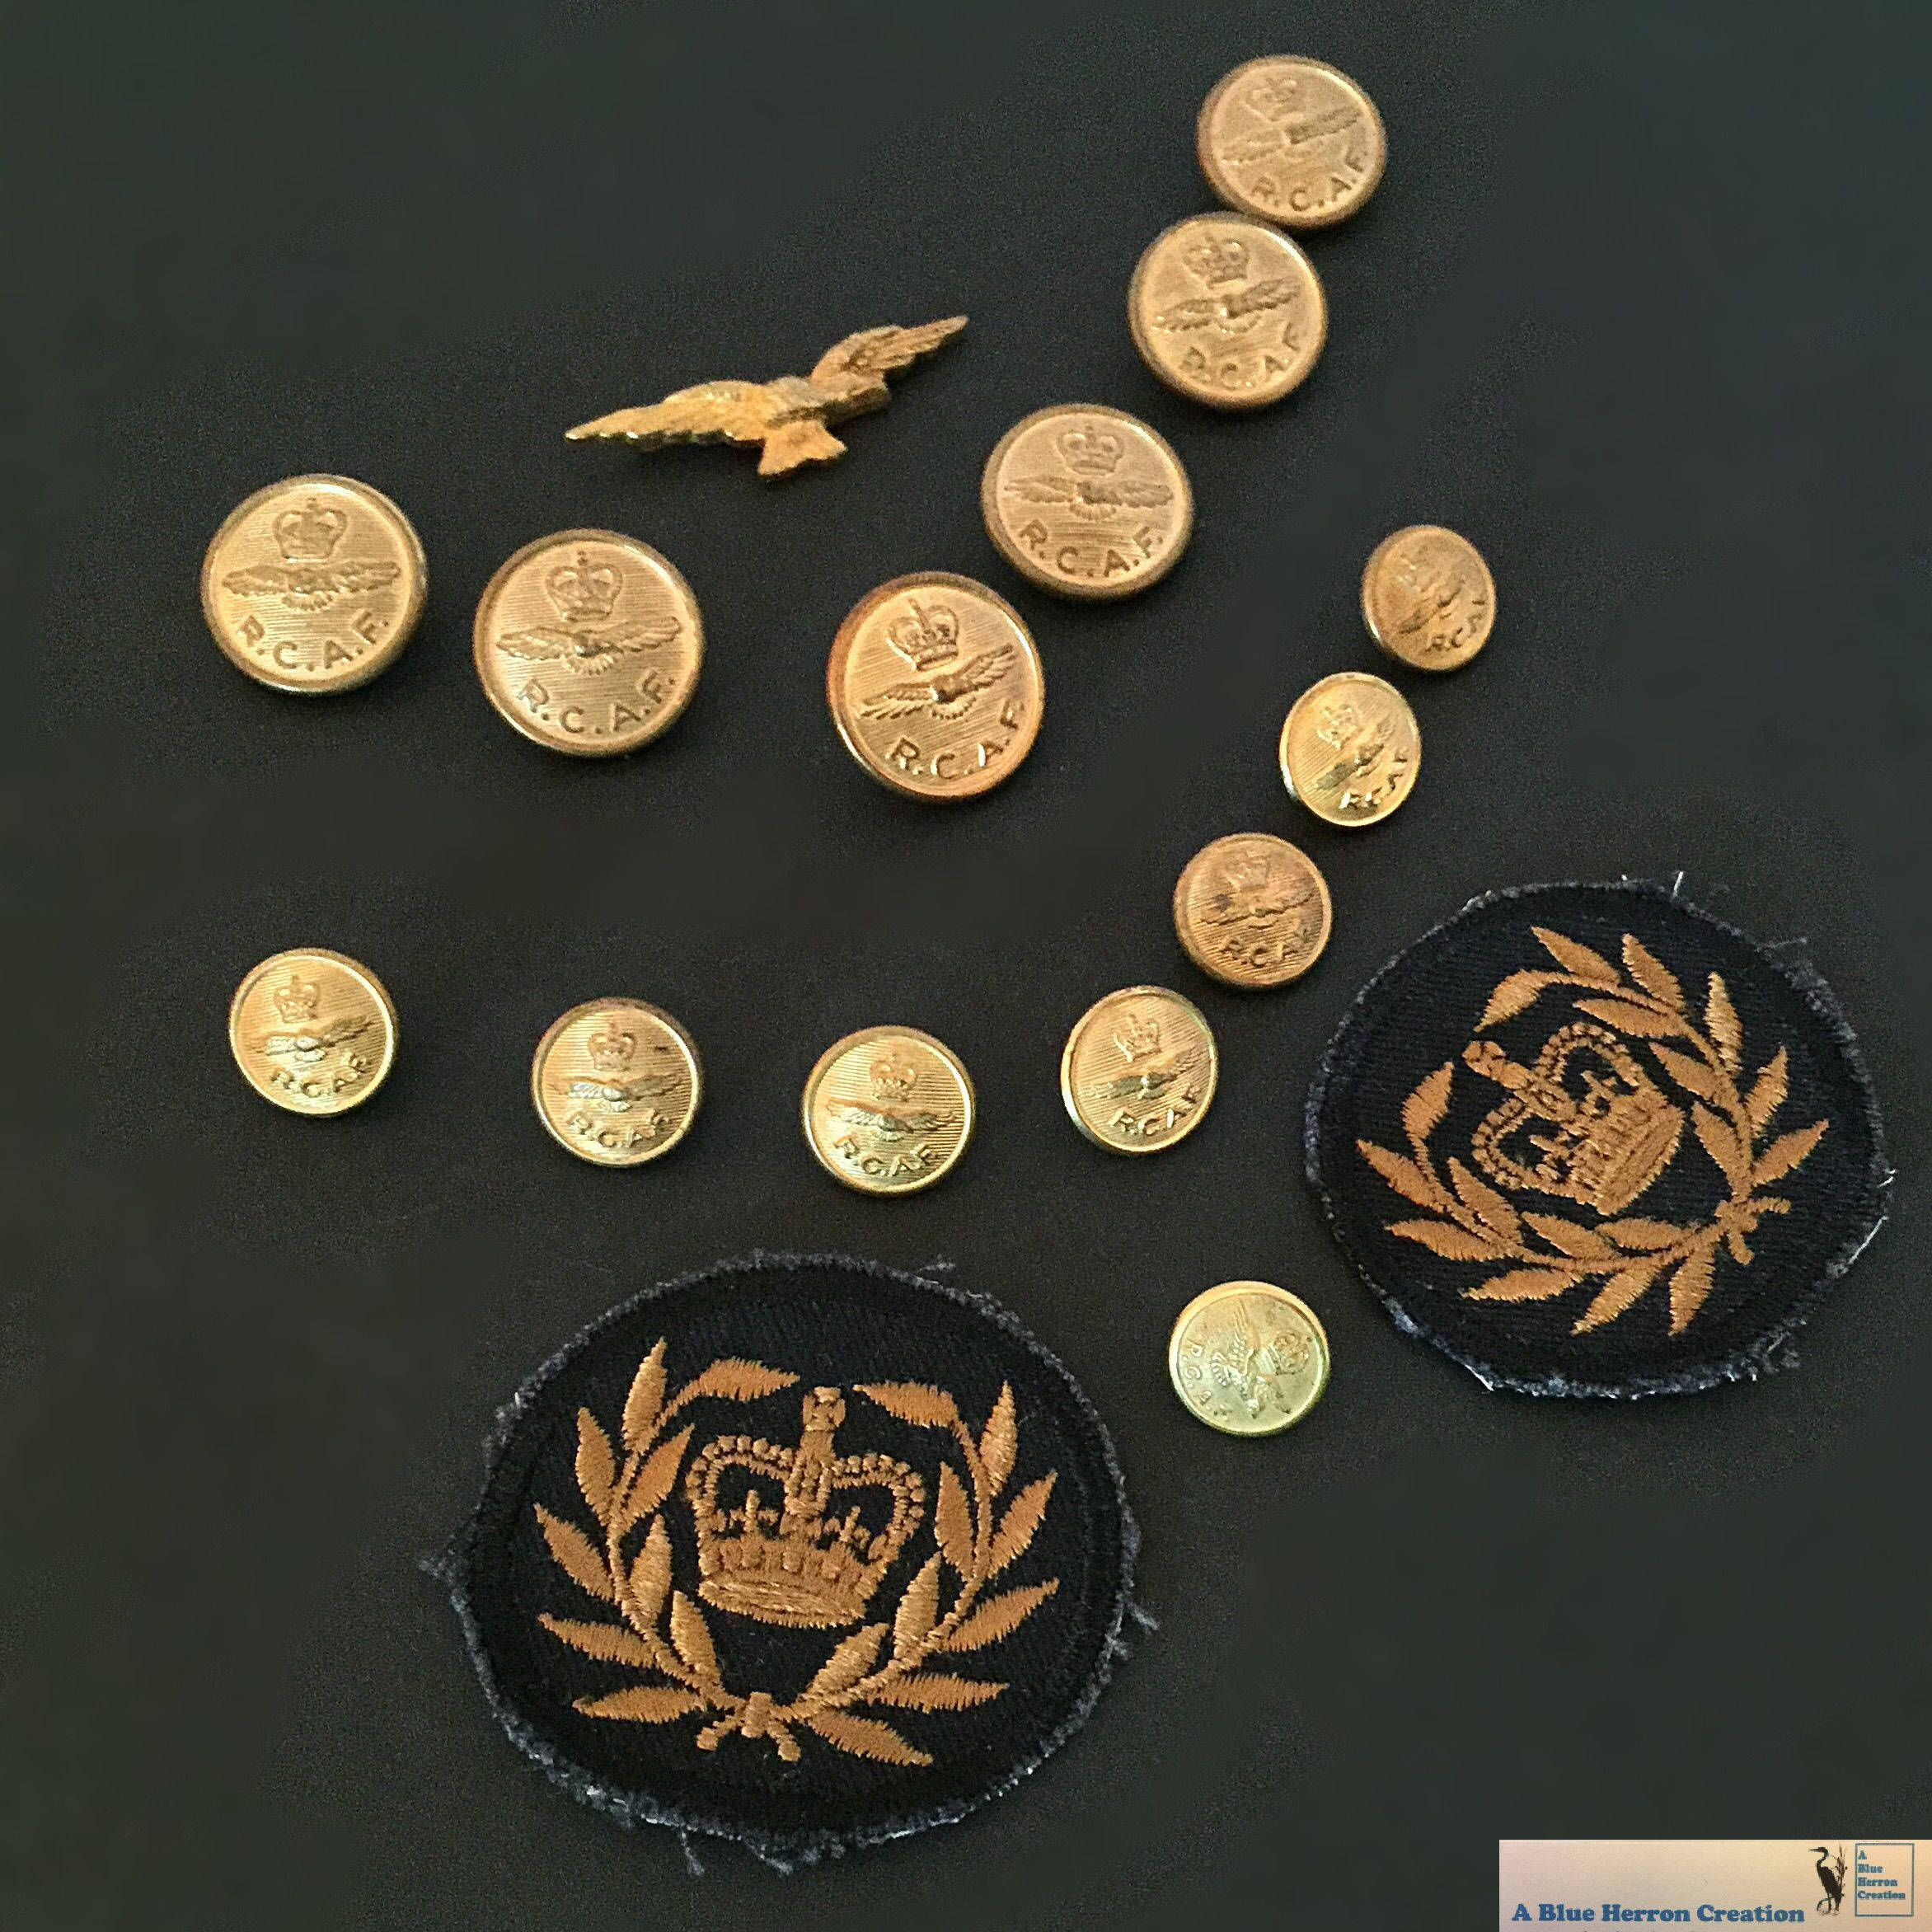 WWII RCAF Brass Buttons, RCAF Eagle Badge, Military Badges